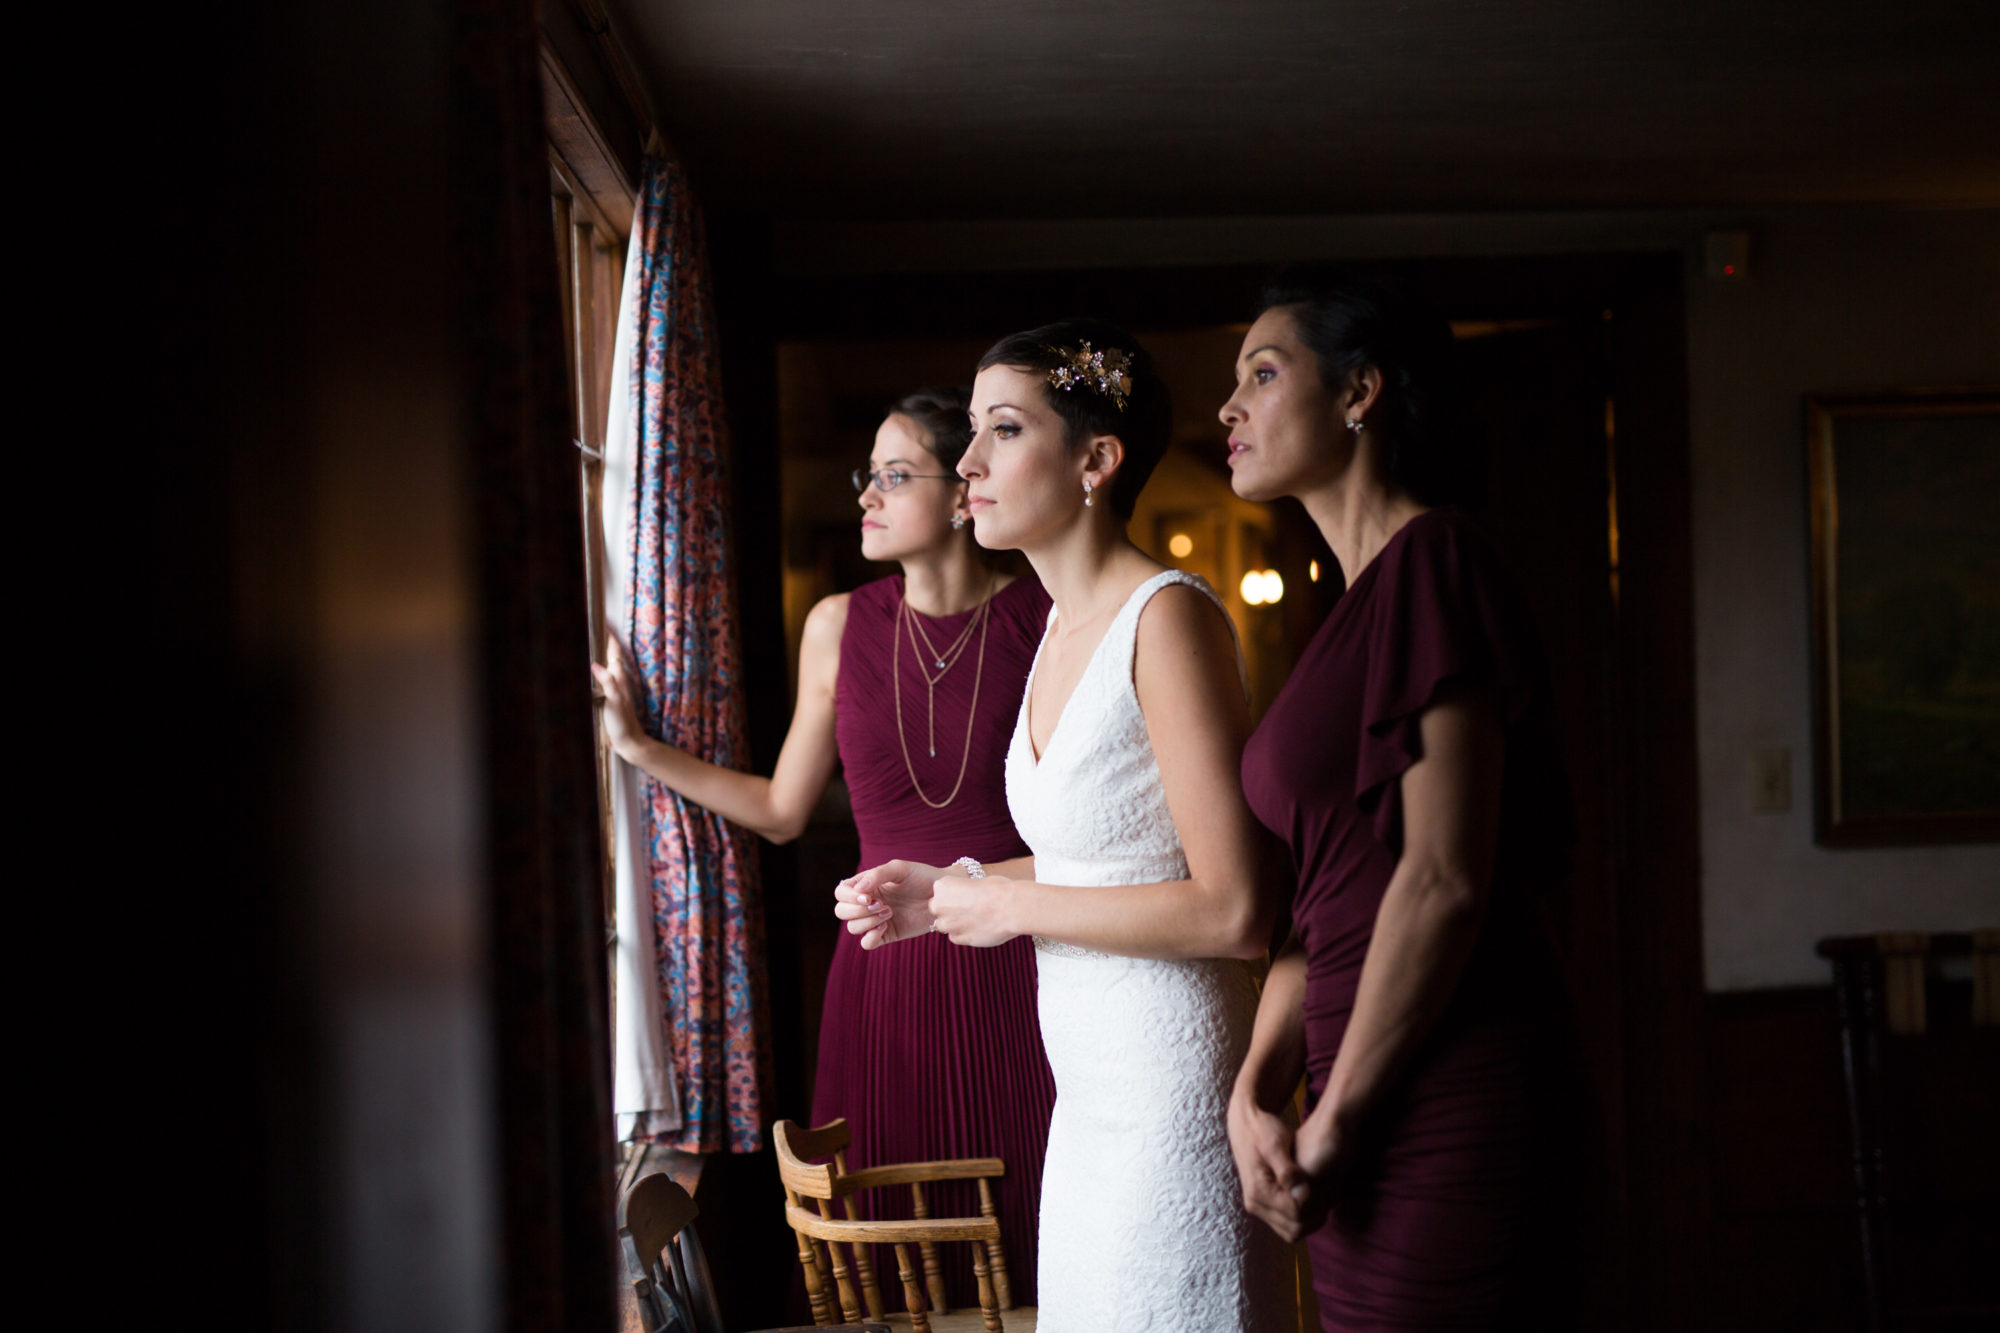 Bridesmaids Bride Sisters Wedding Massachusetts Zsuzsi Pal Photography Destination